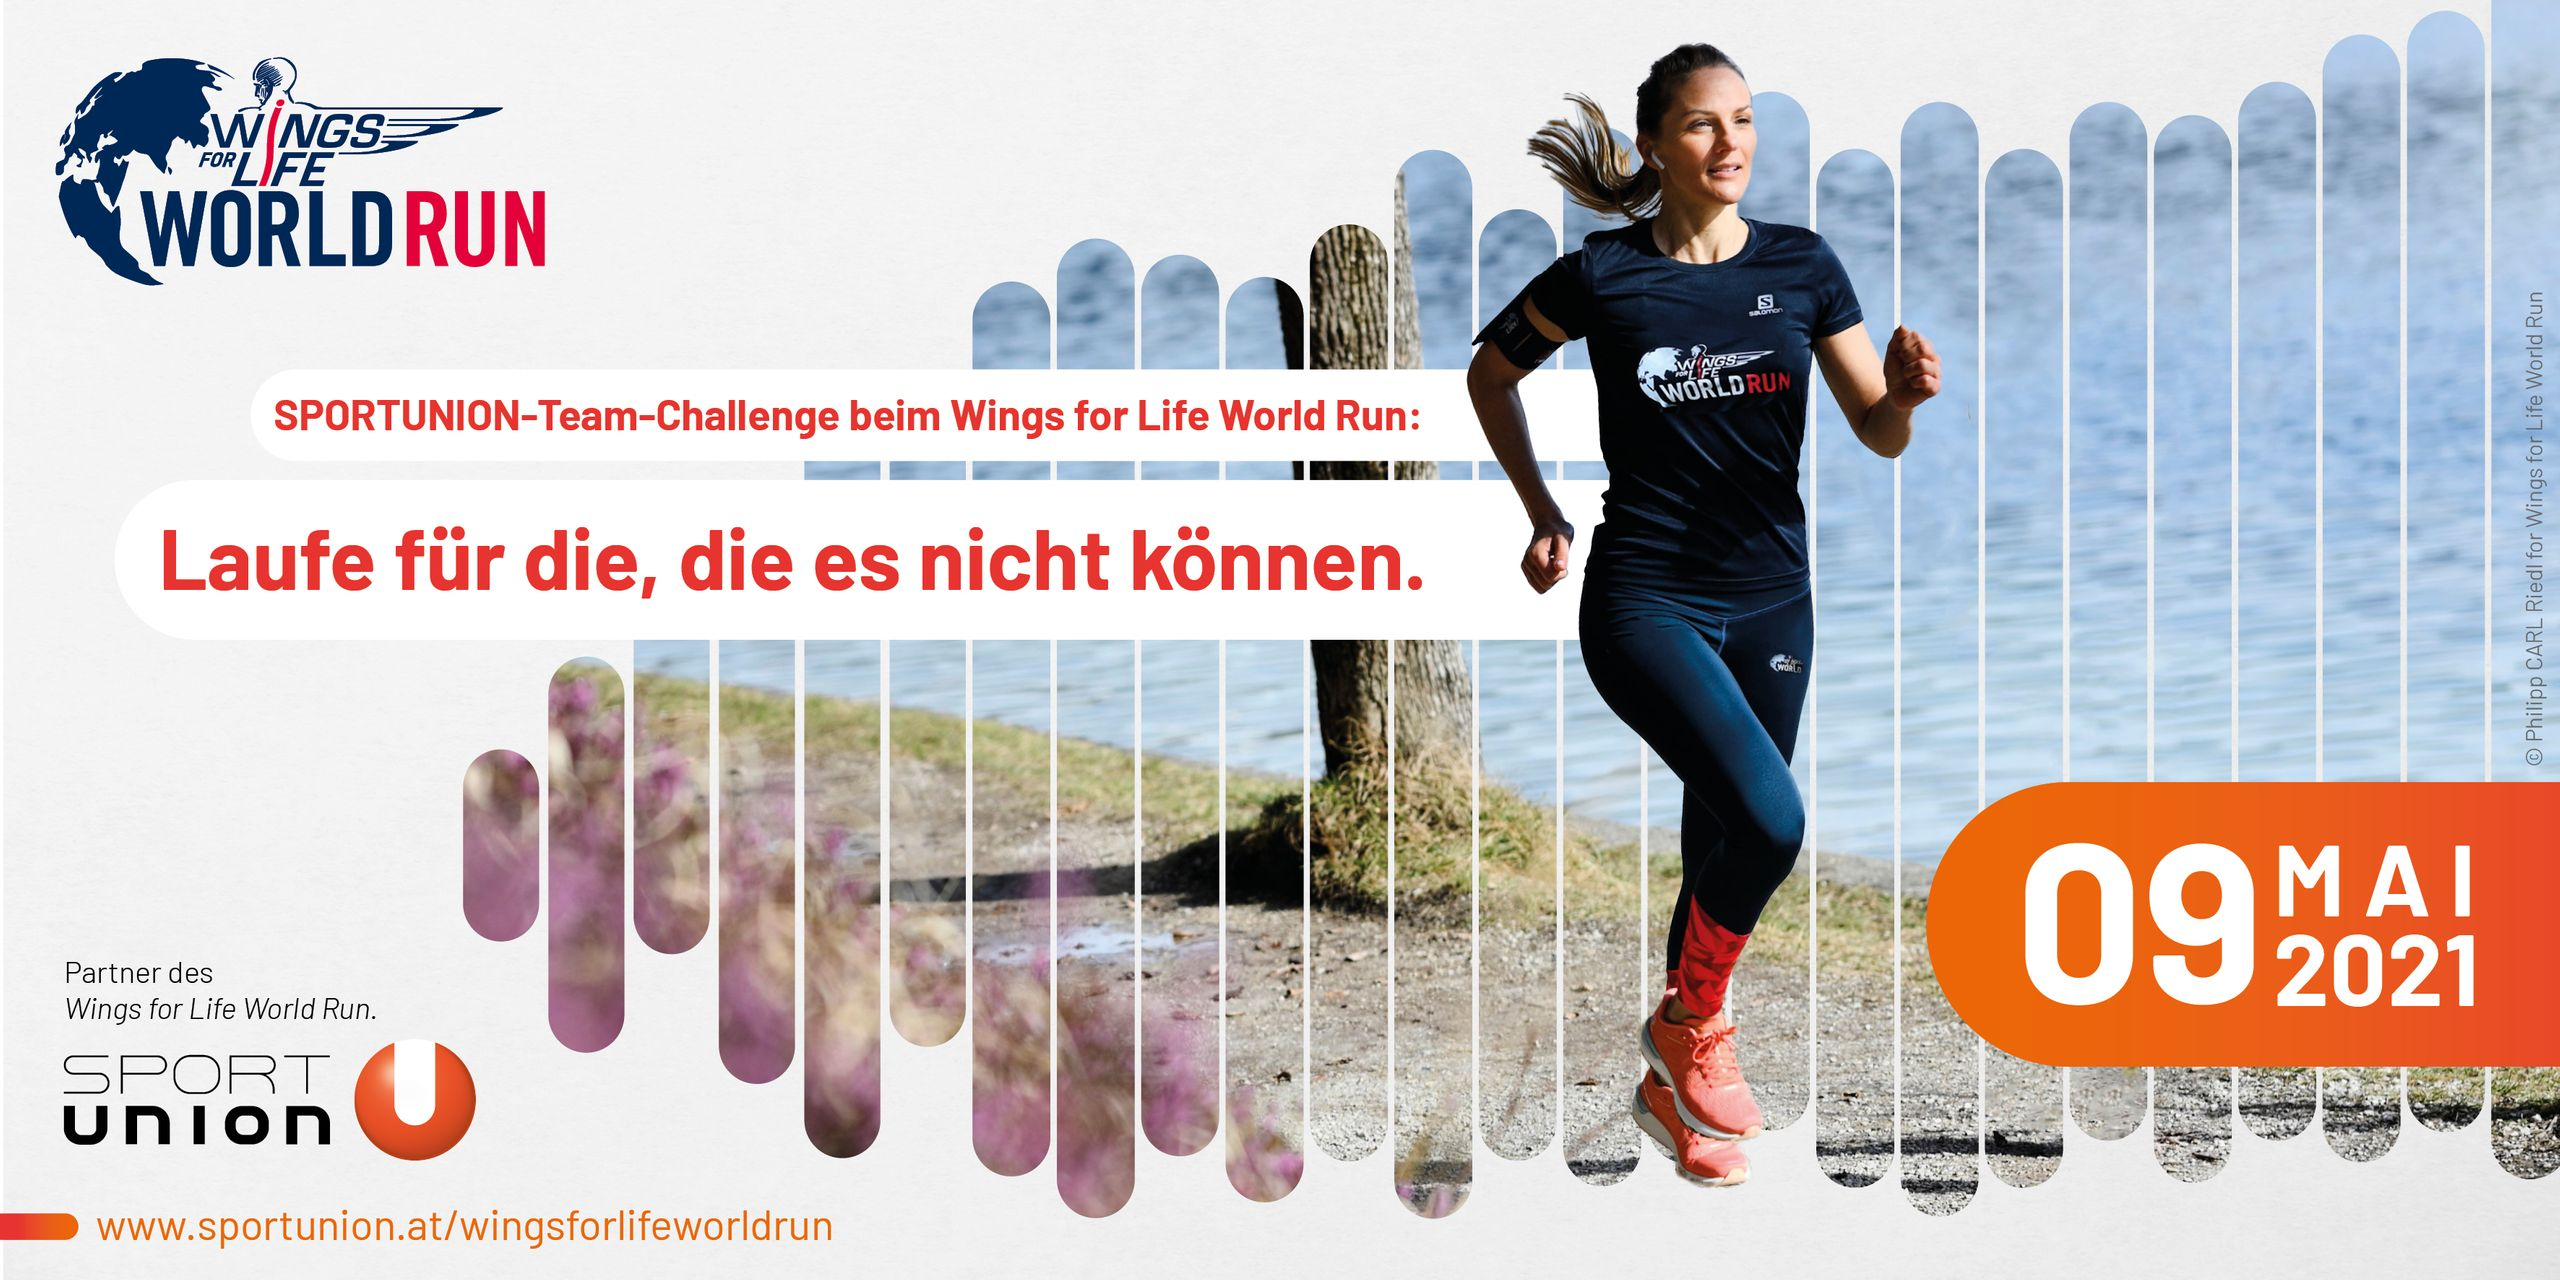 © Philipp CARL Riedl for Wings for Life World Run